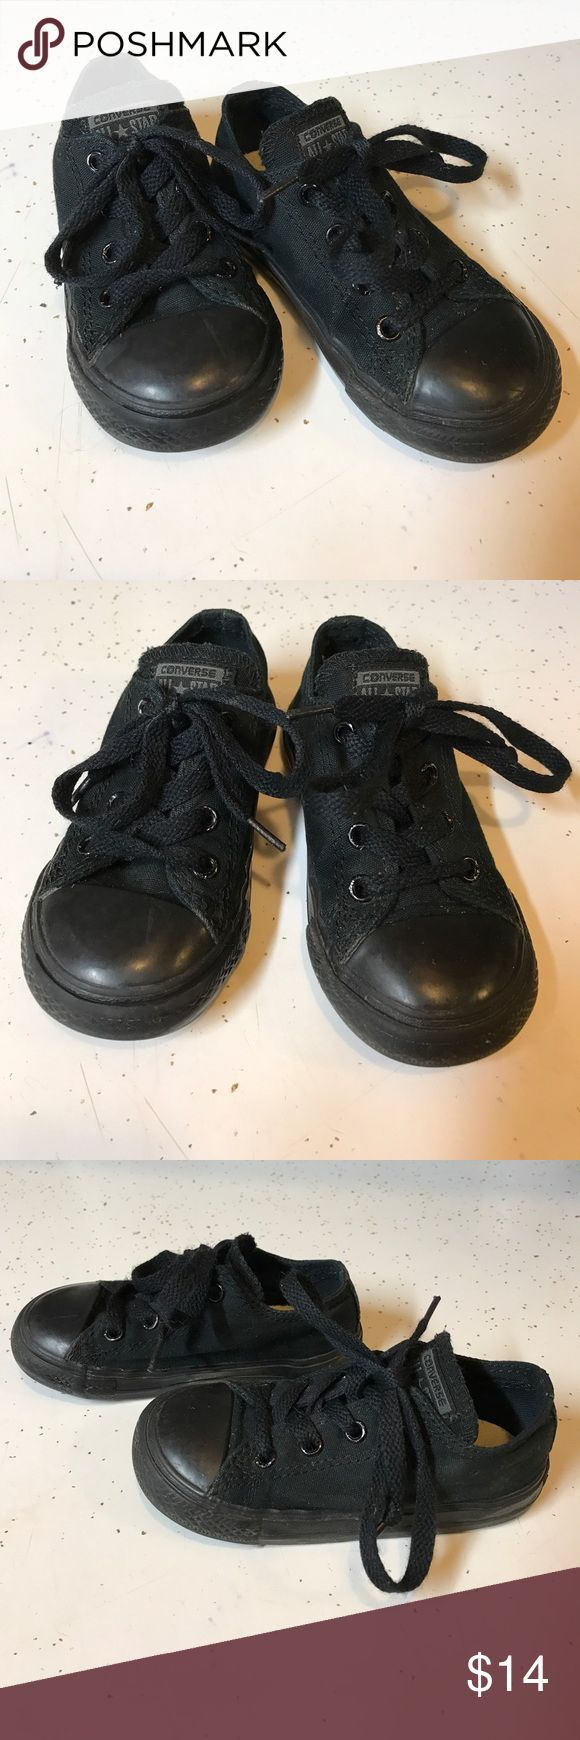 Black Converse Low Tops Toddler Size 7!! Rad black on black Converse low tops. These were the cutest on our son! These have been used, but still in good condition! Converse Shoes Sneakers